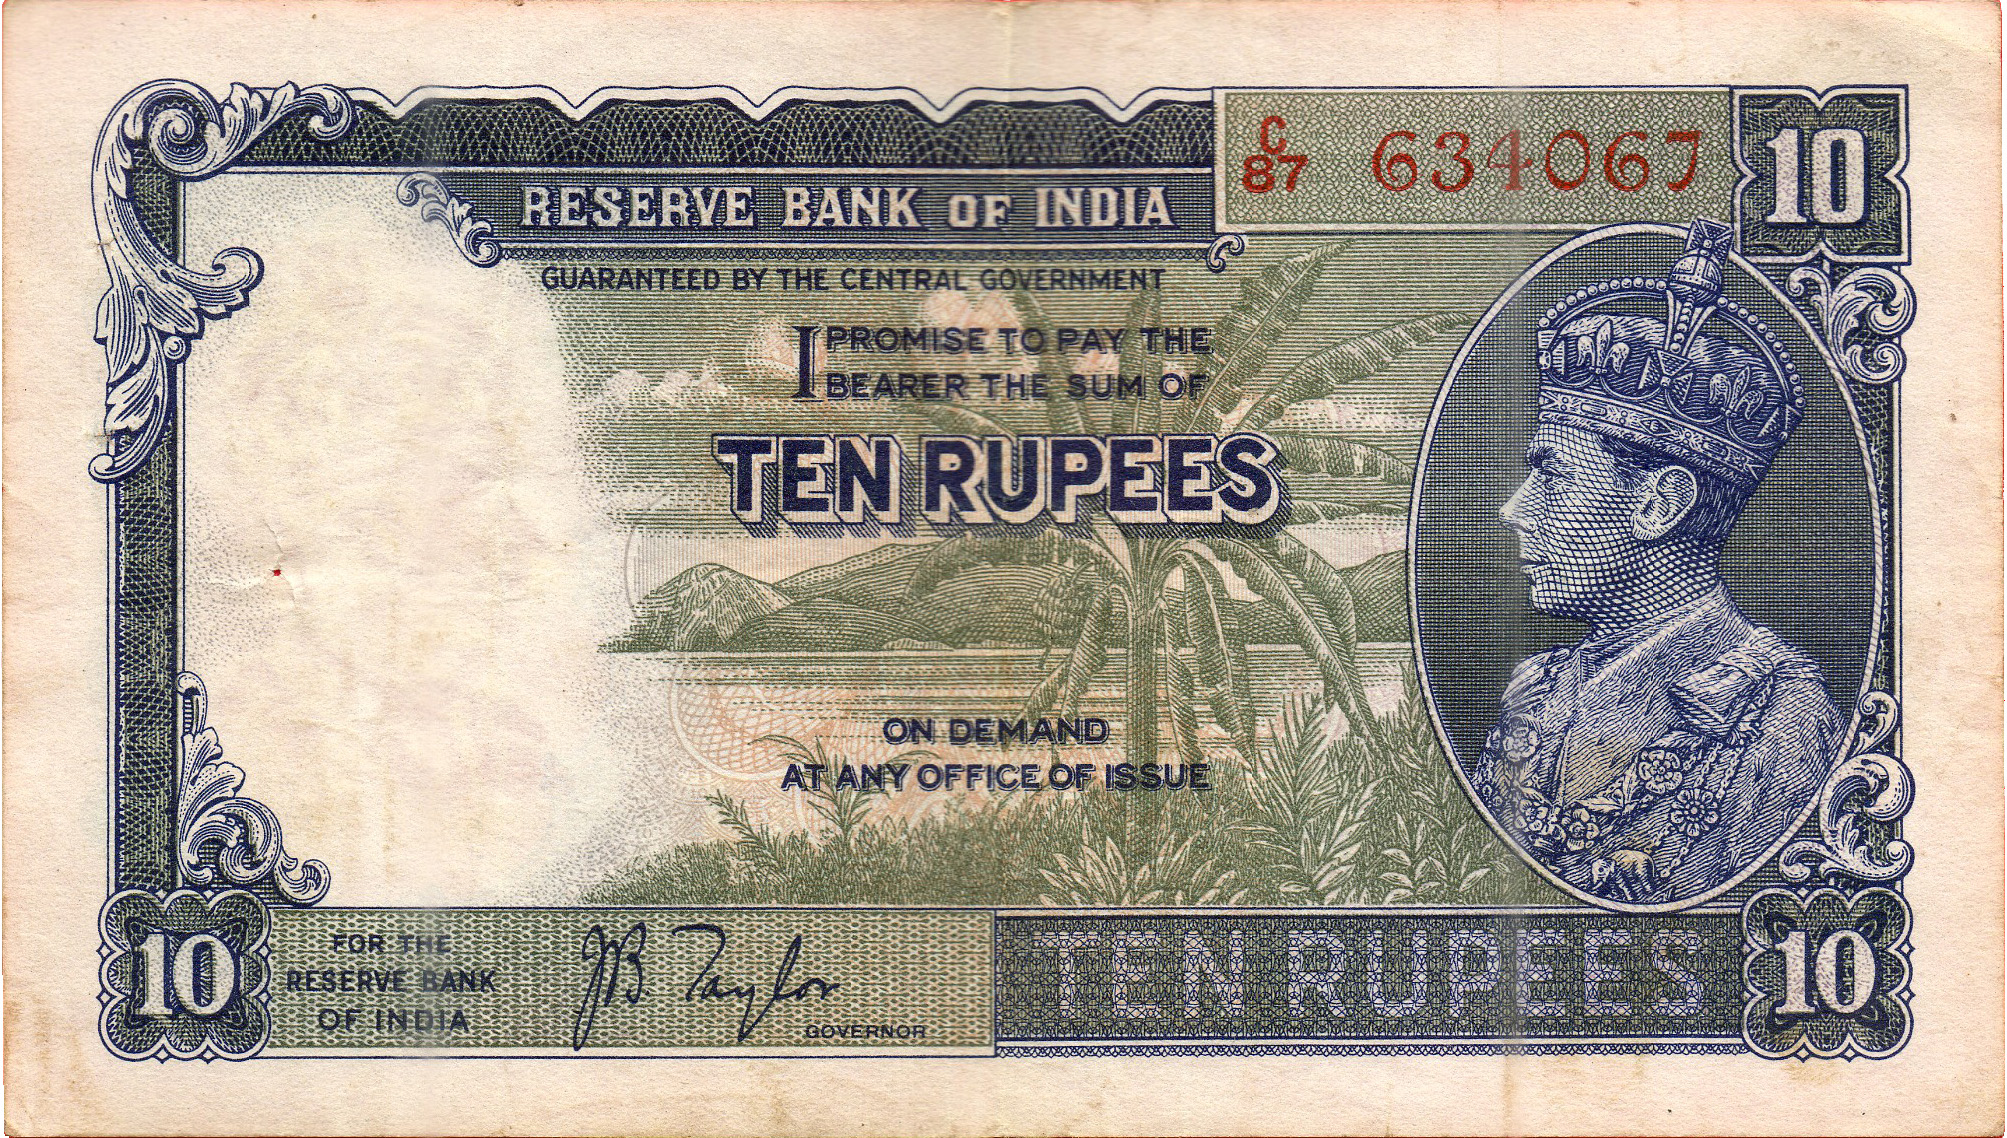 Rupee Note Size Ten-rupee Note Issued by The